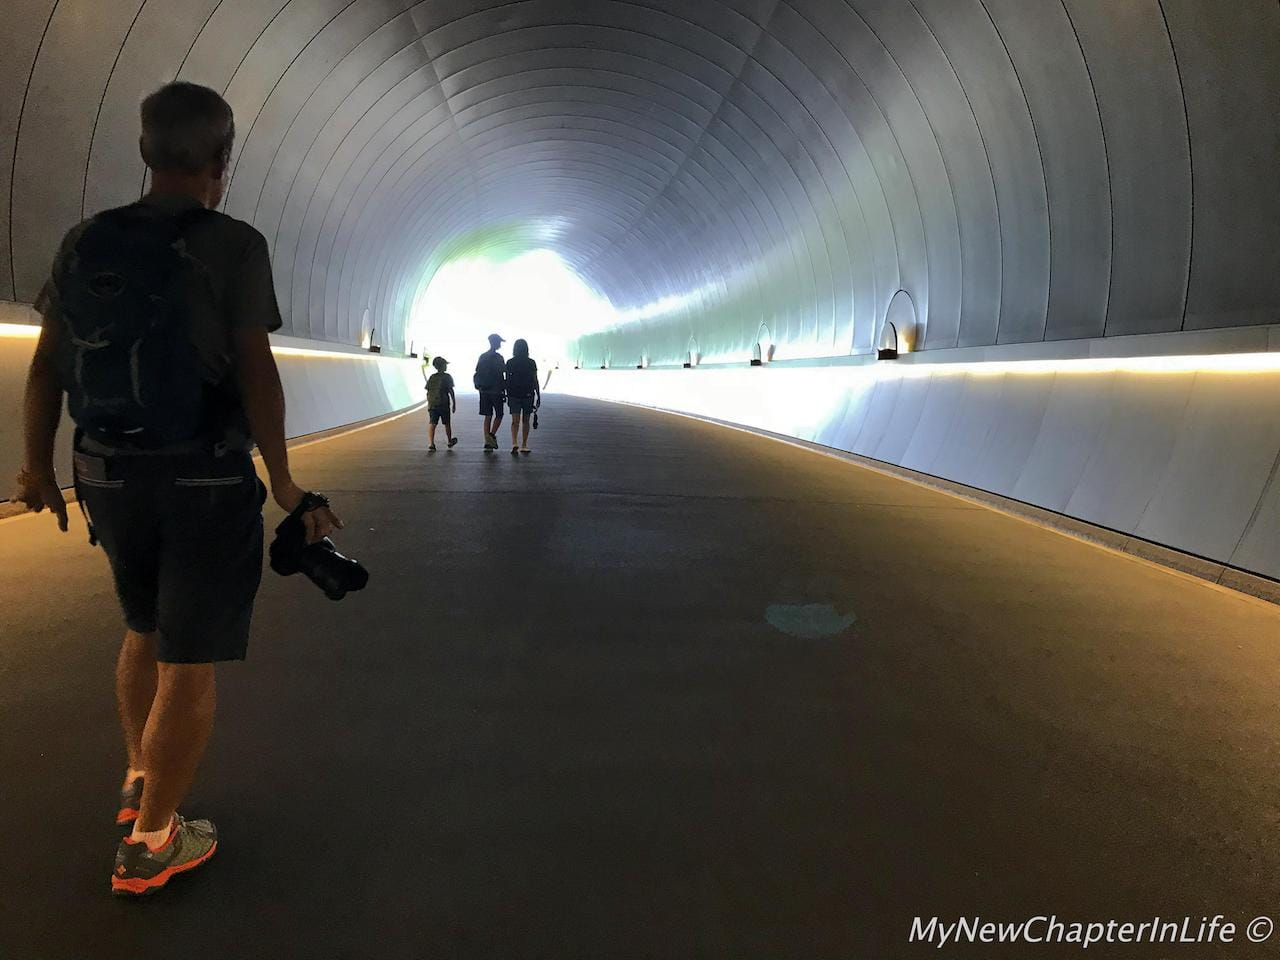 Strolling along the metallic tunnel and prepare for the scenery ahead